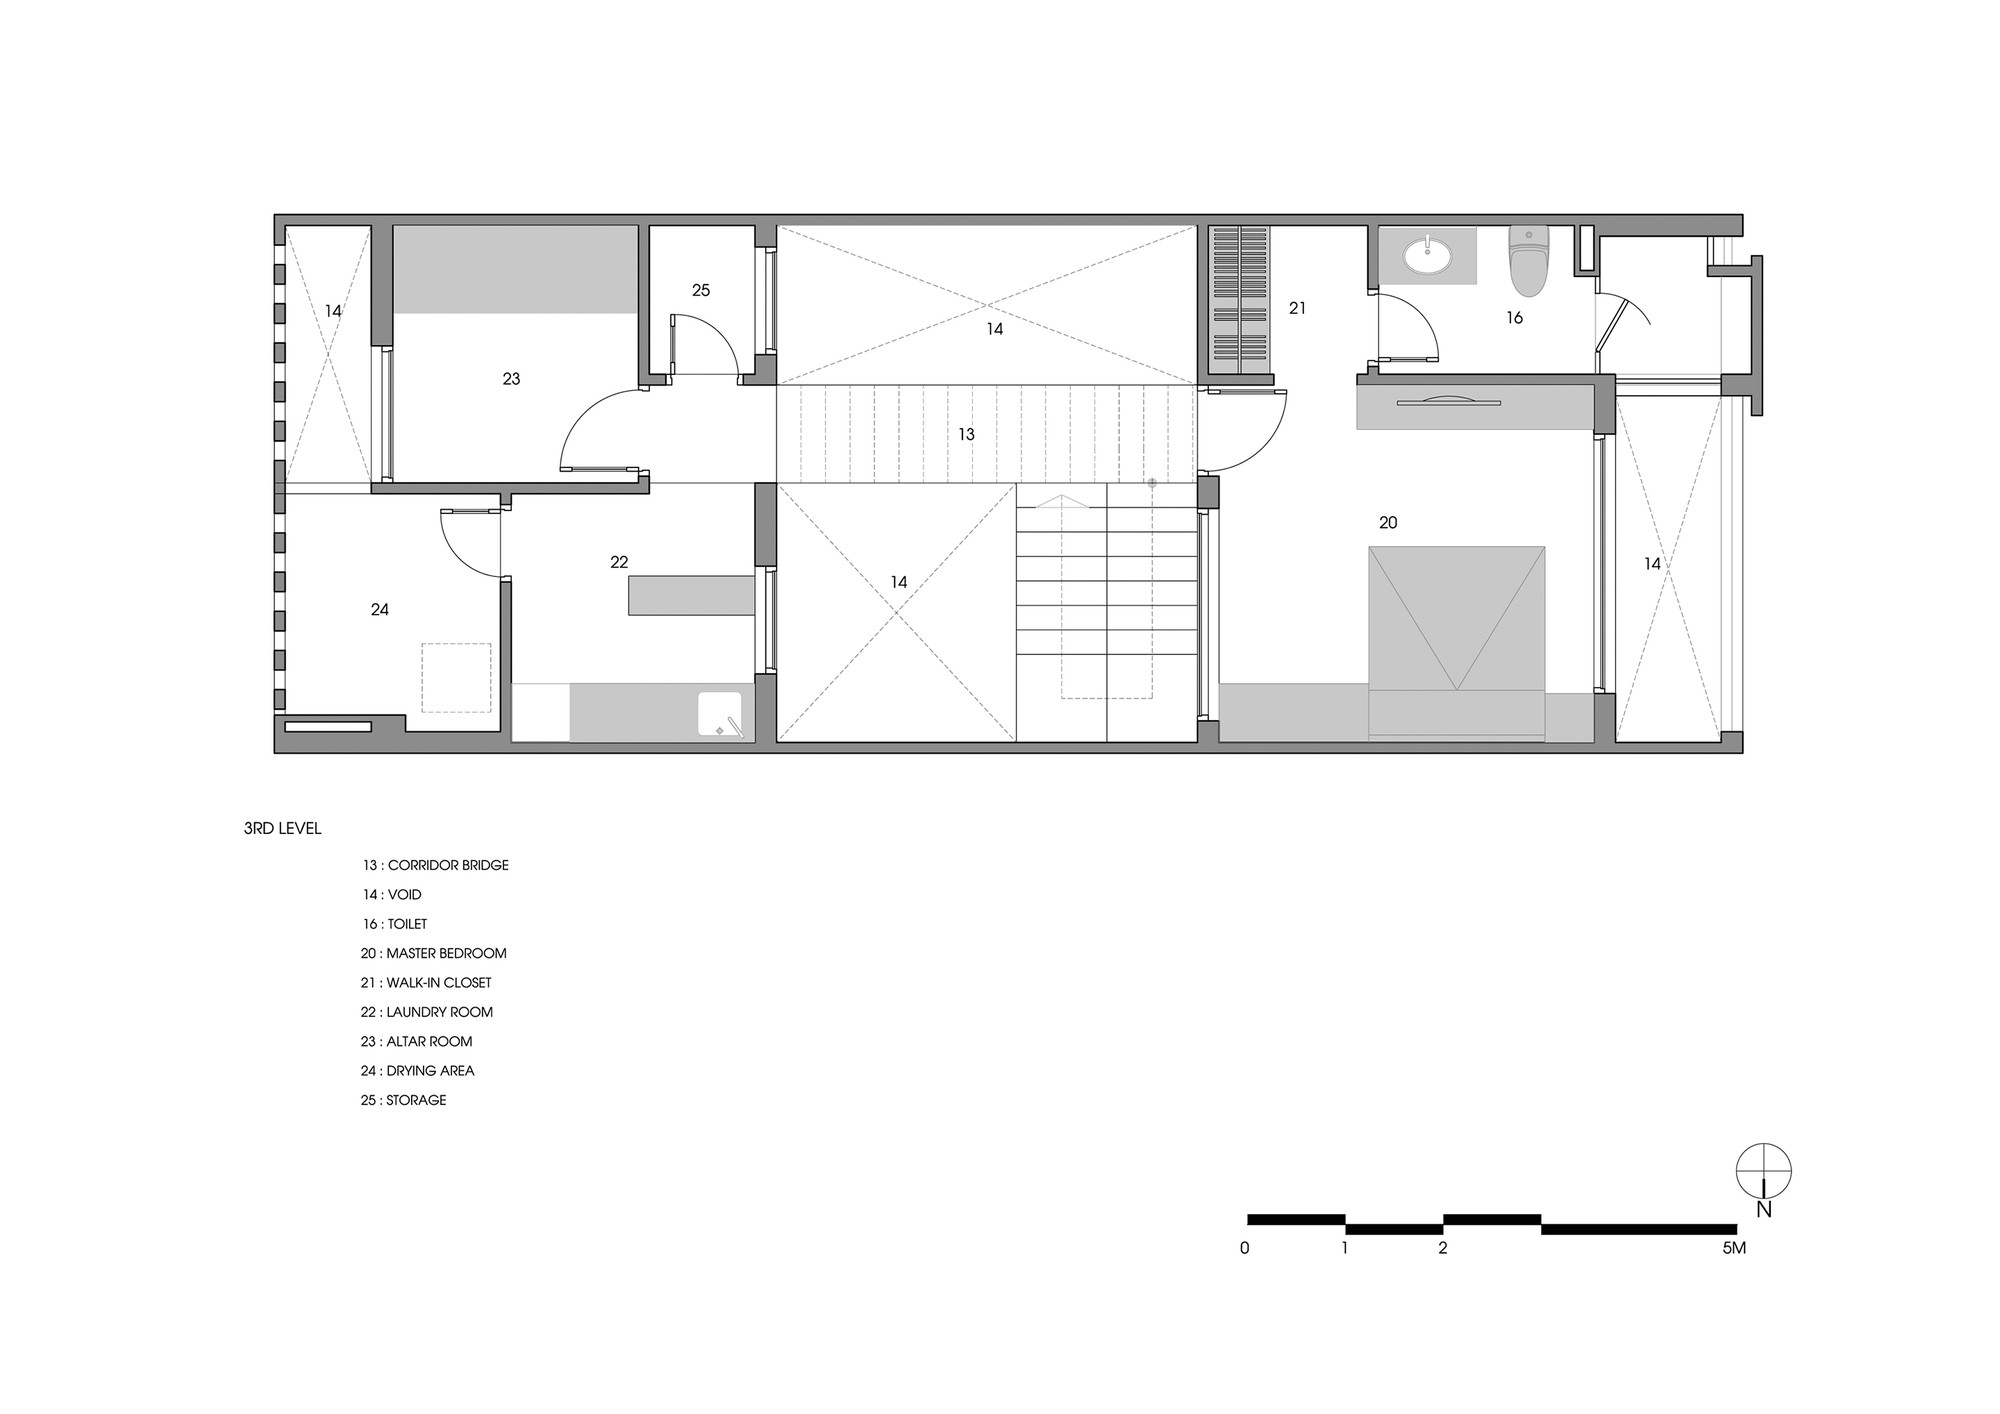 Architectural Design Home Floor Plans: Gallery Of B House / I.House Architecture And Construction